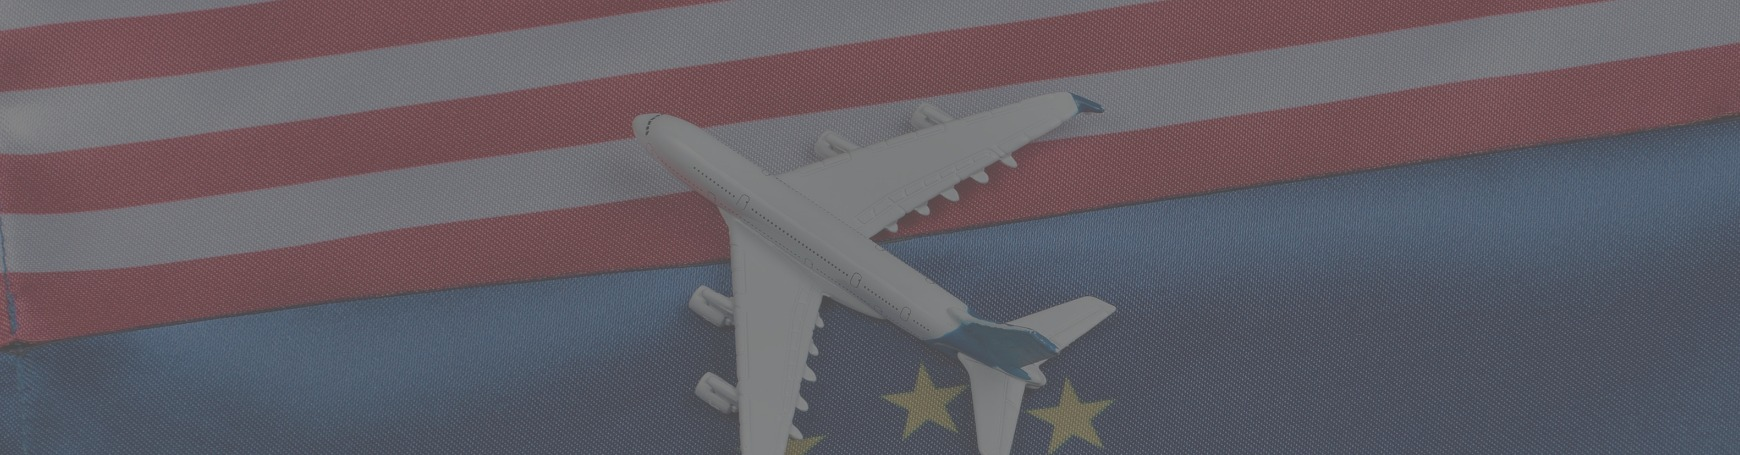 Airplane sitting on top of USA flag and European flag